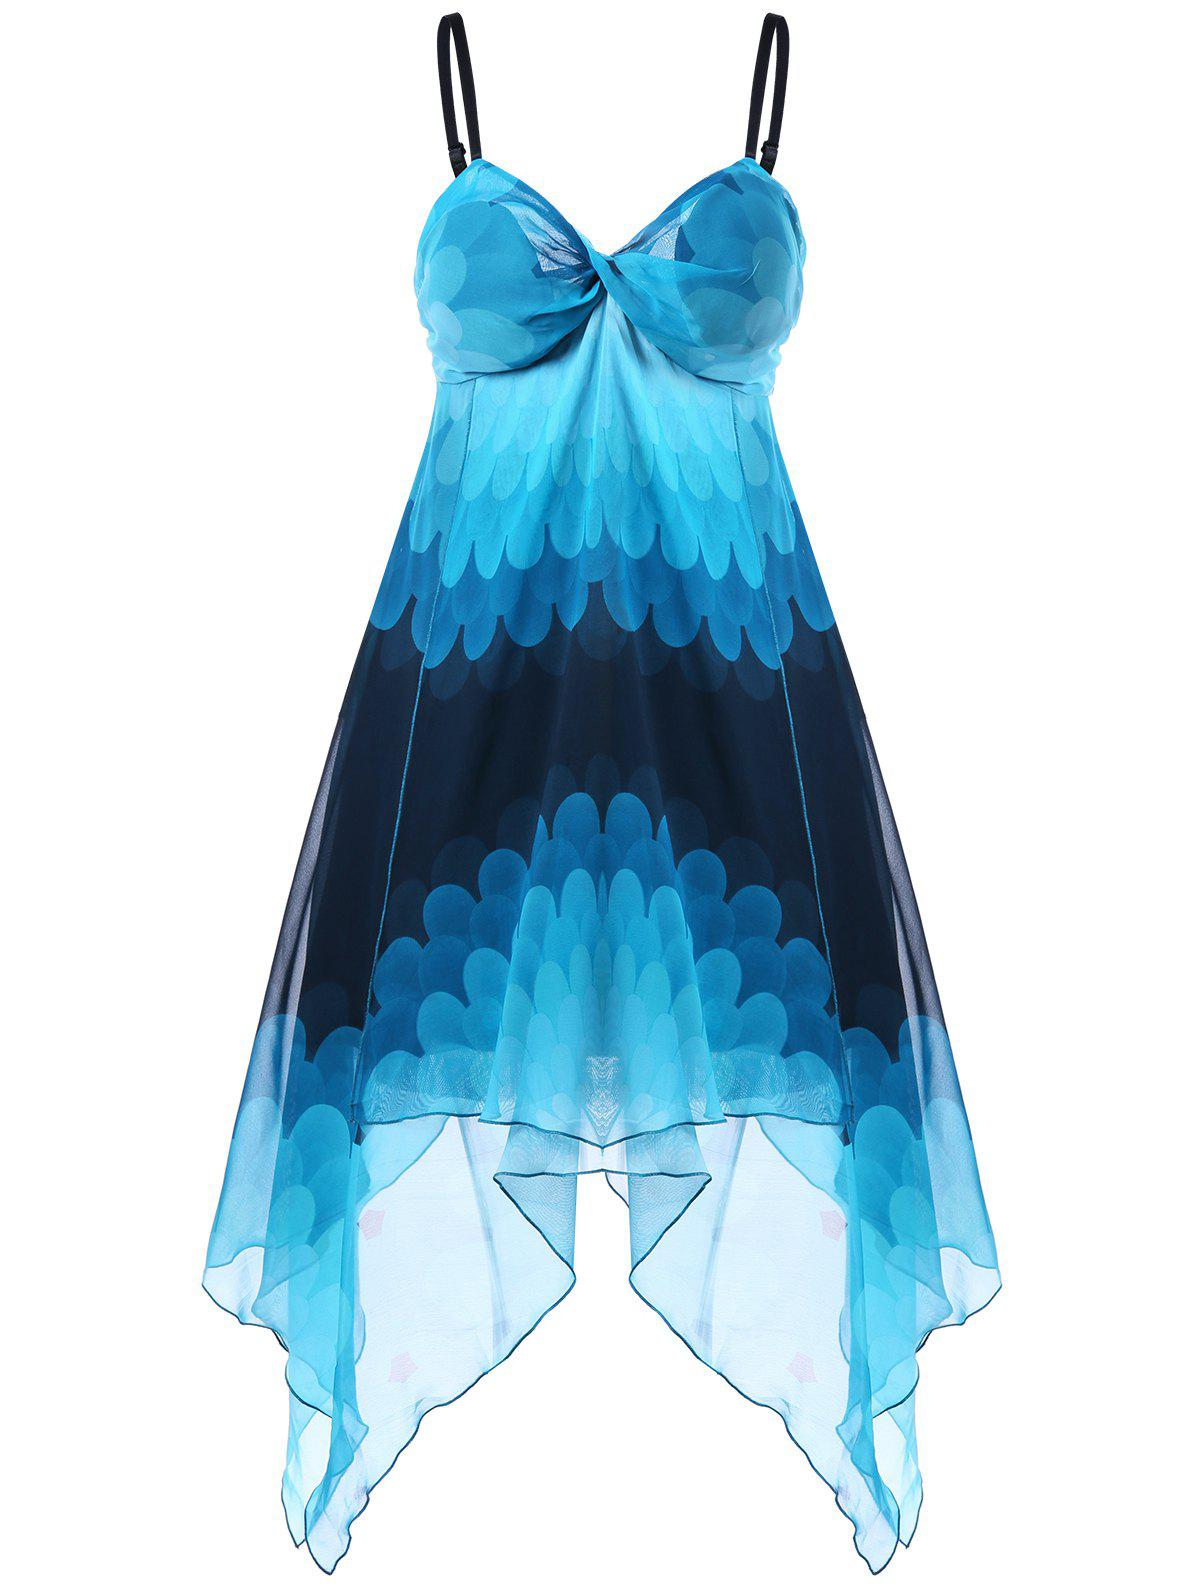 Empire Waist Ombre Handkerchief DressWOMEN<br><br>Size: L; Color: BLUE; Style: Bohemian; Material: Polyester; Silhouette: Asymmetrical; Dresses Length: Knee-Length; Neckline: Spaghetti Strap; Sleeve Length: Sleeveless; Pattern Type: Others; With Belt: No; Season: Summer; Weight: 0.3000kg; Package Contents: 1 x Dress;